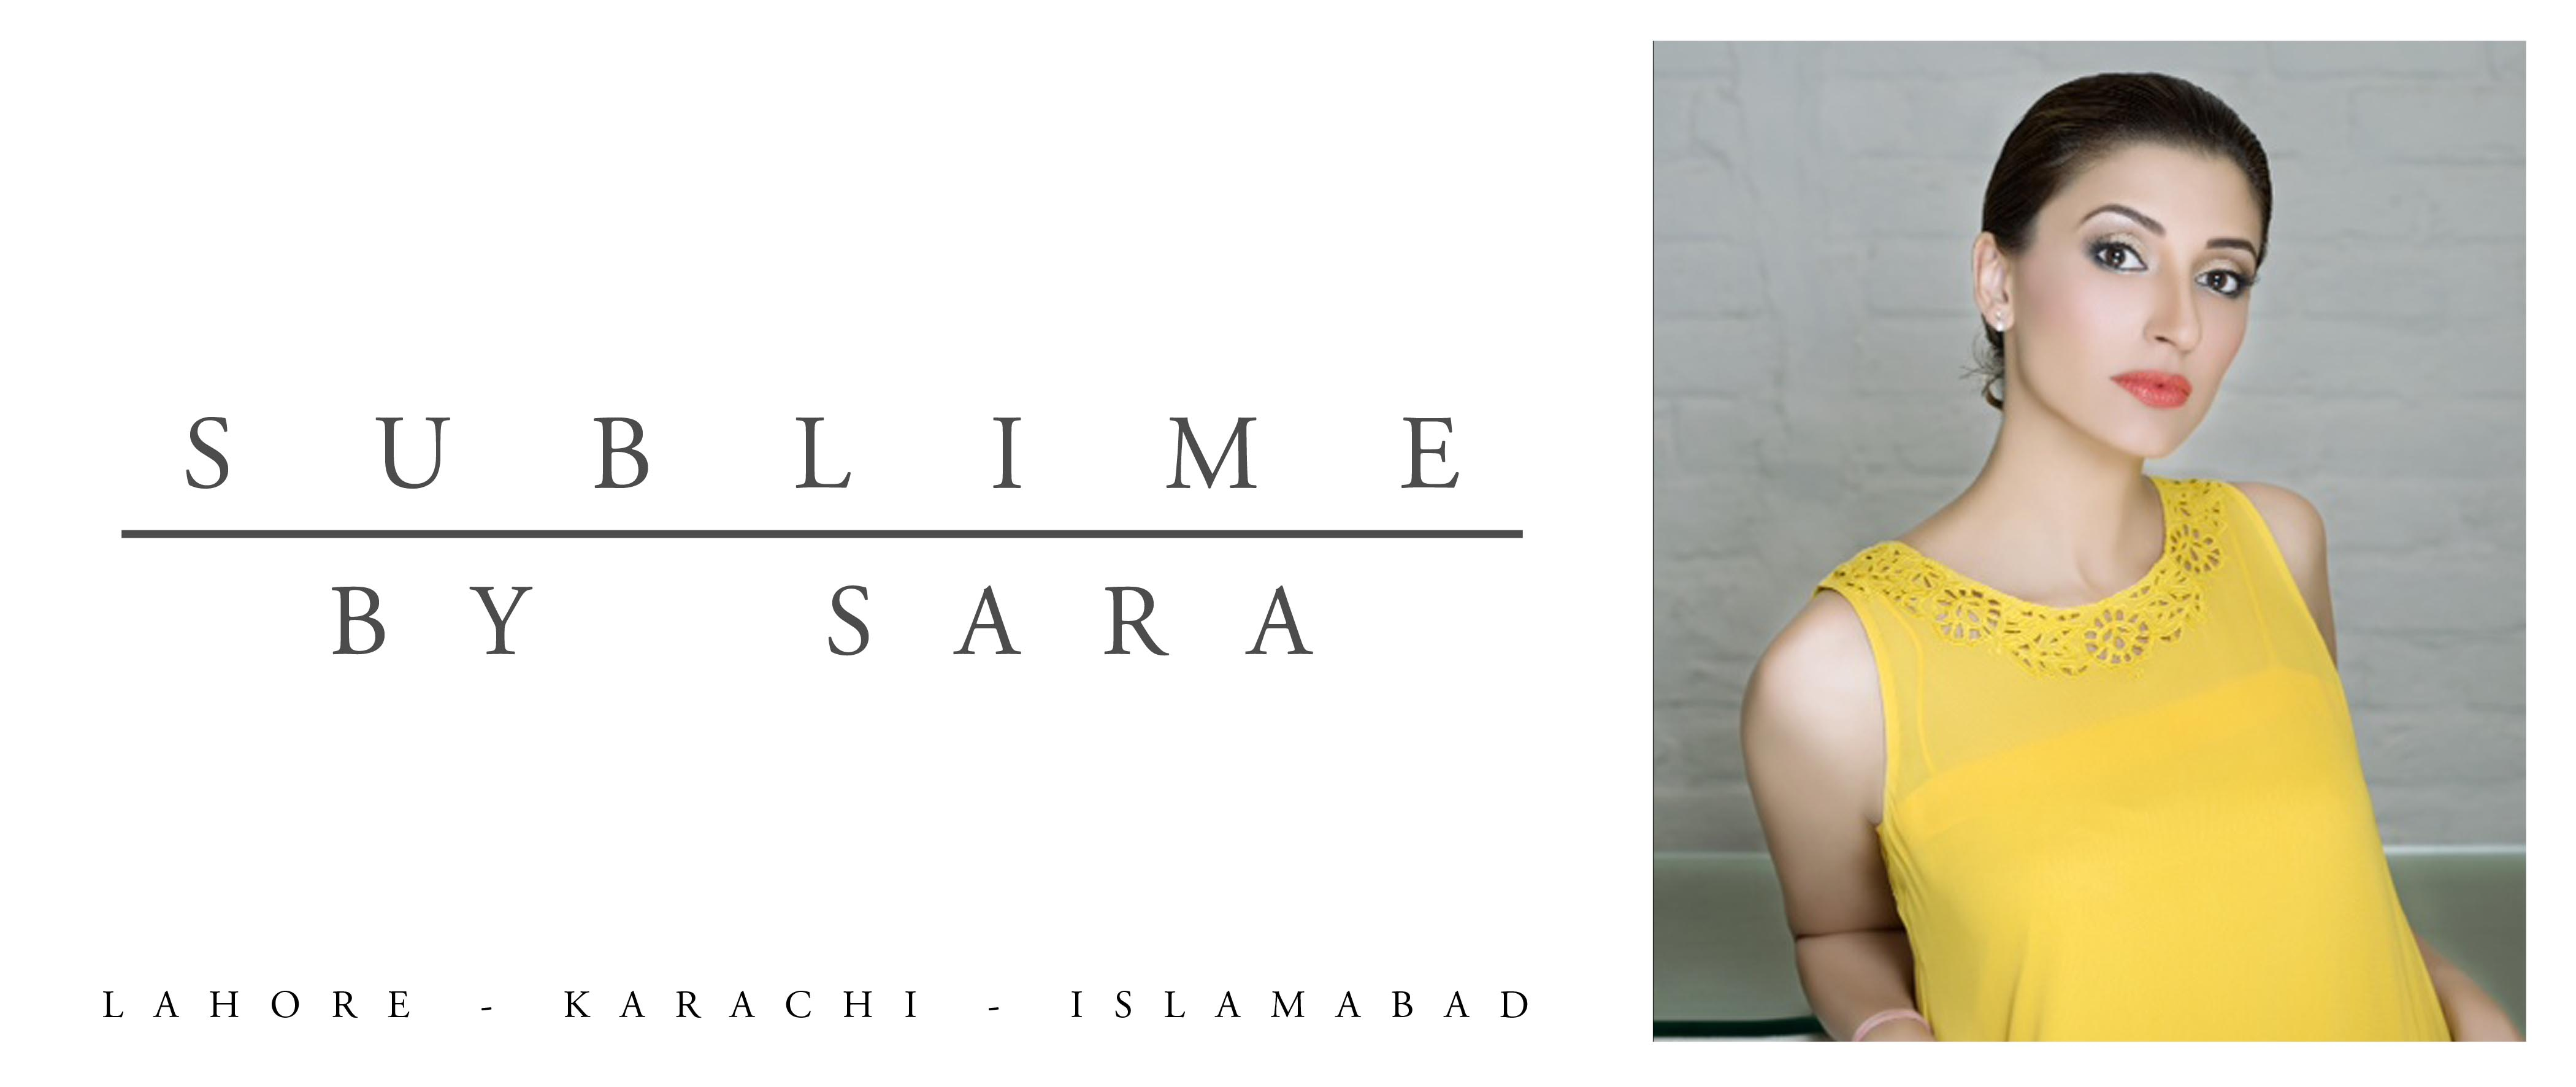 Juju Haider for Sublime by Sara